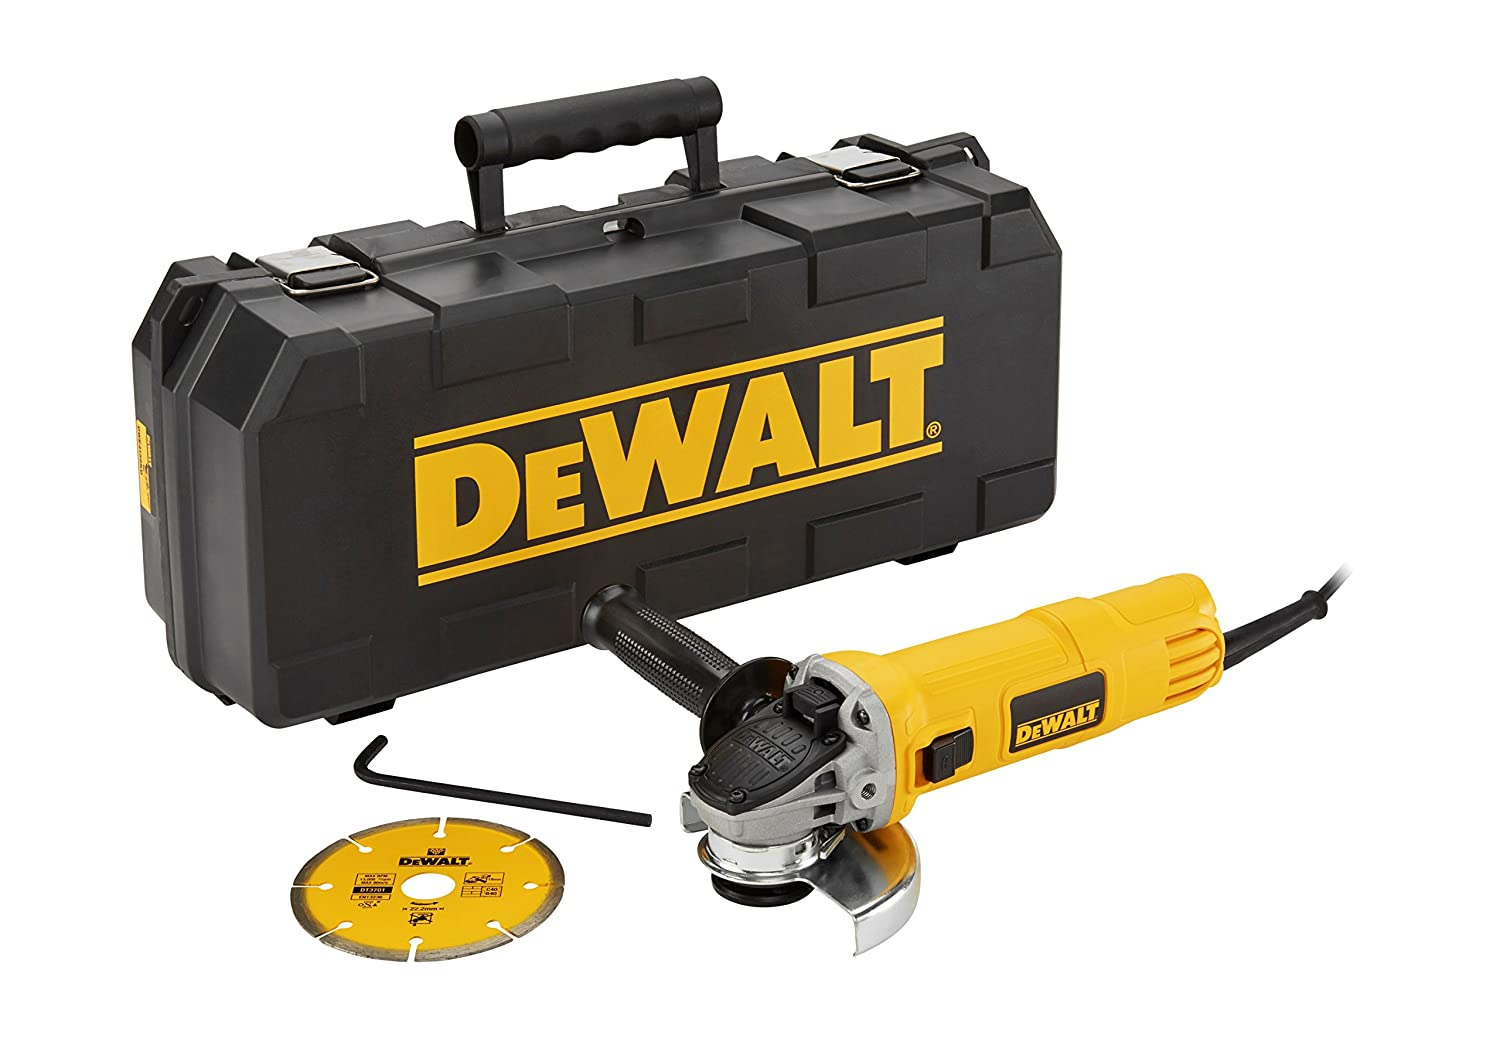 DEWALT DWE4156KD-QS - Mini-amoladora 115mm 900W 11.800 rpm Arranque Suave + Bloqueo y re-arranque + maletí n + disco diamante